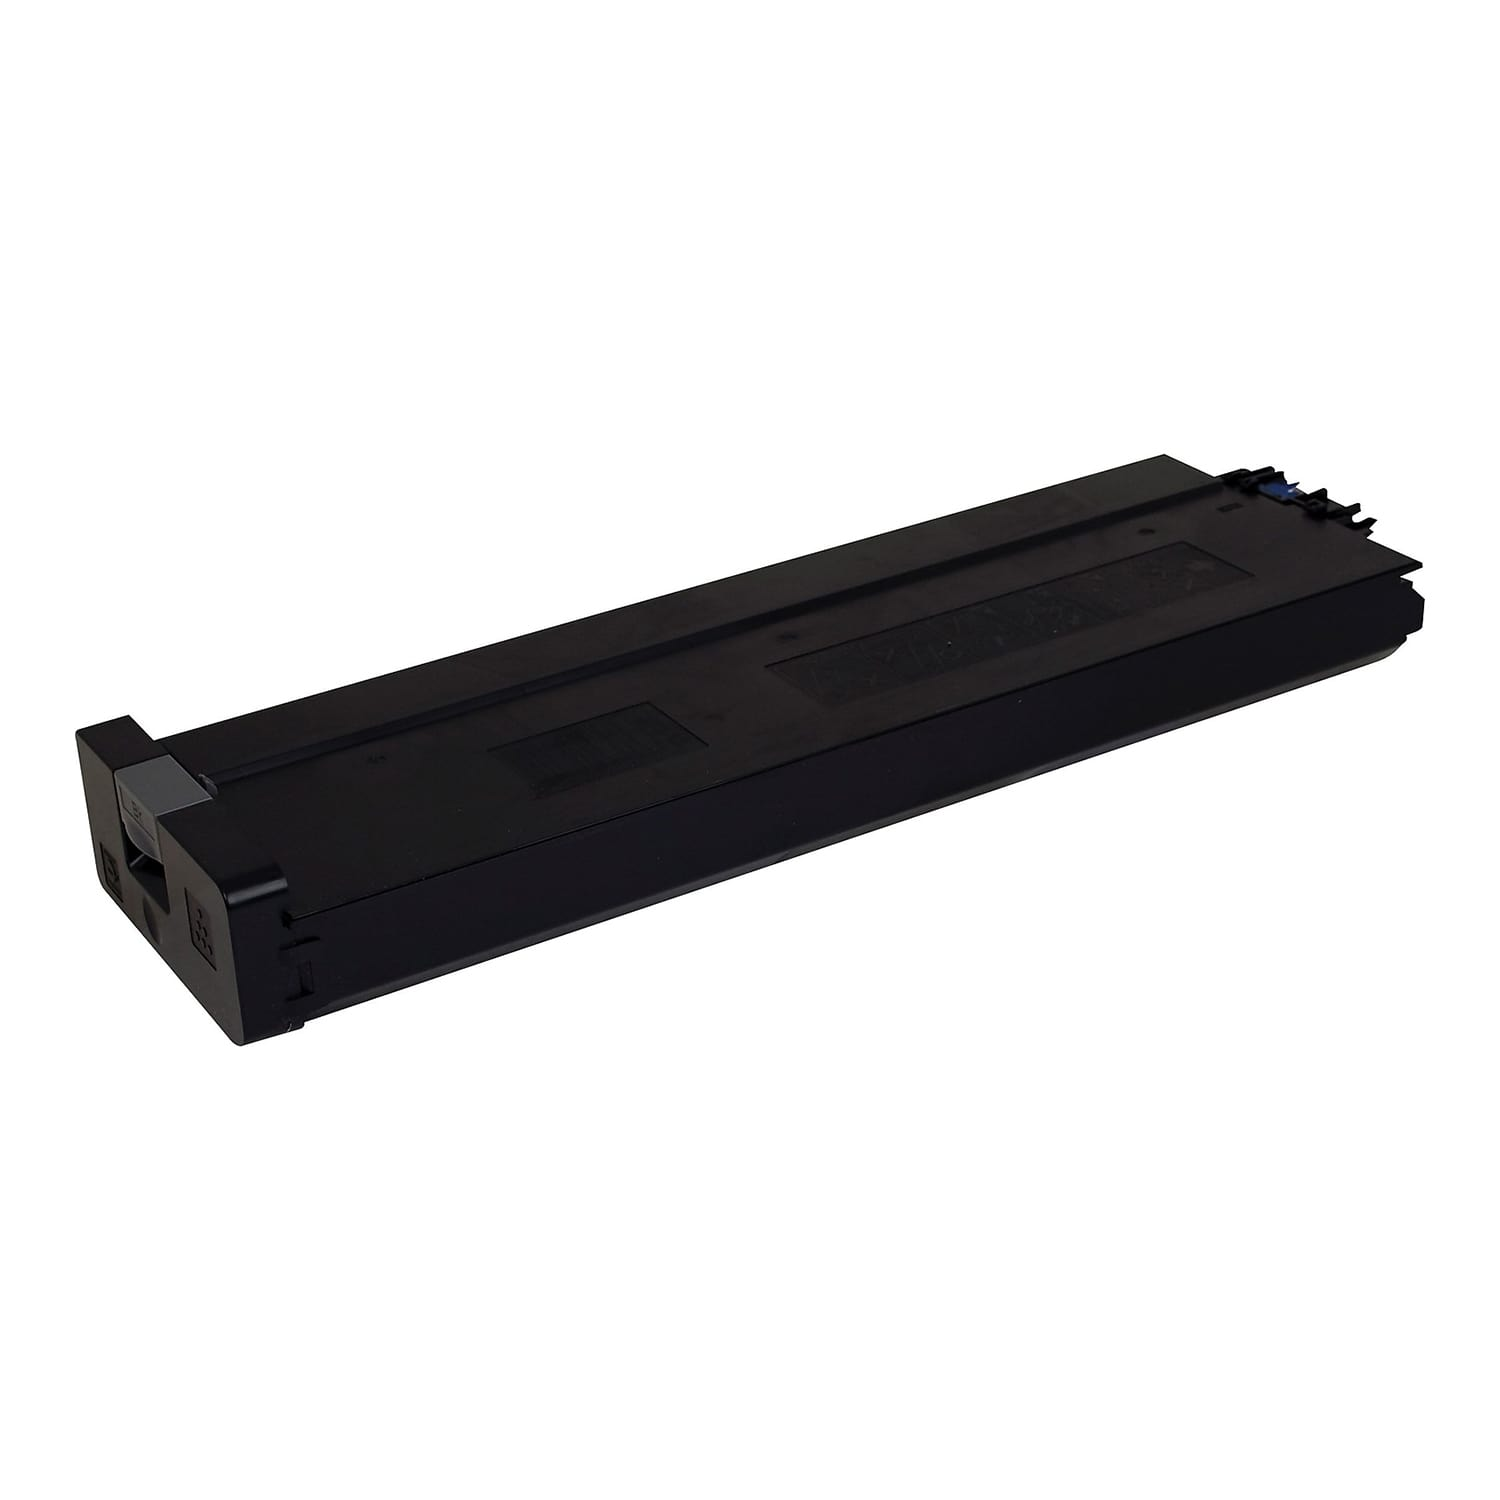 MX-51NTBA Toner Cartridge - Sharp Compatible (Black)